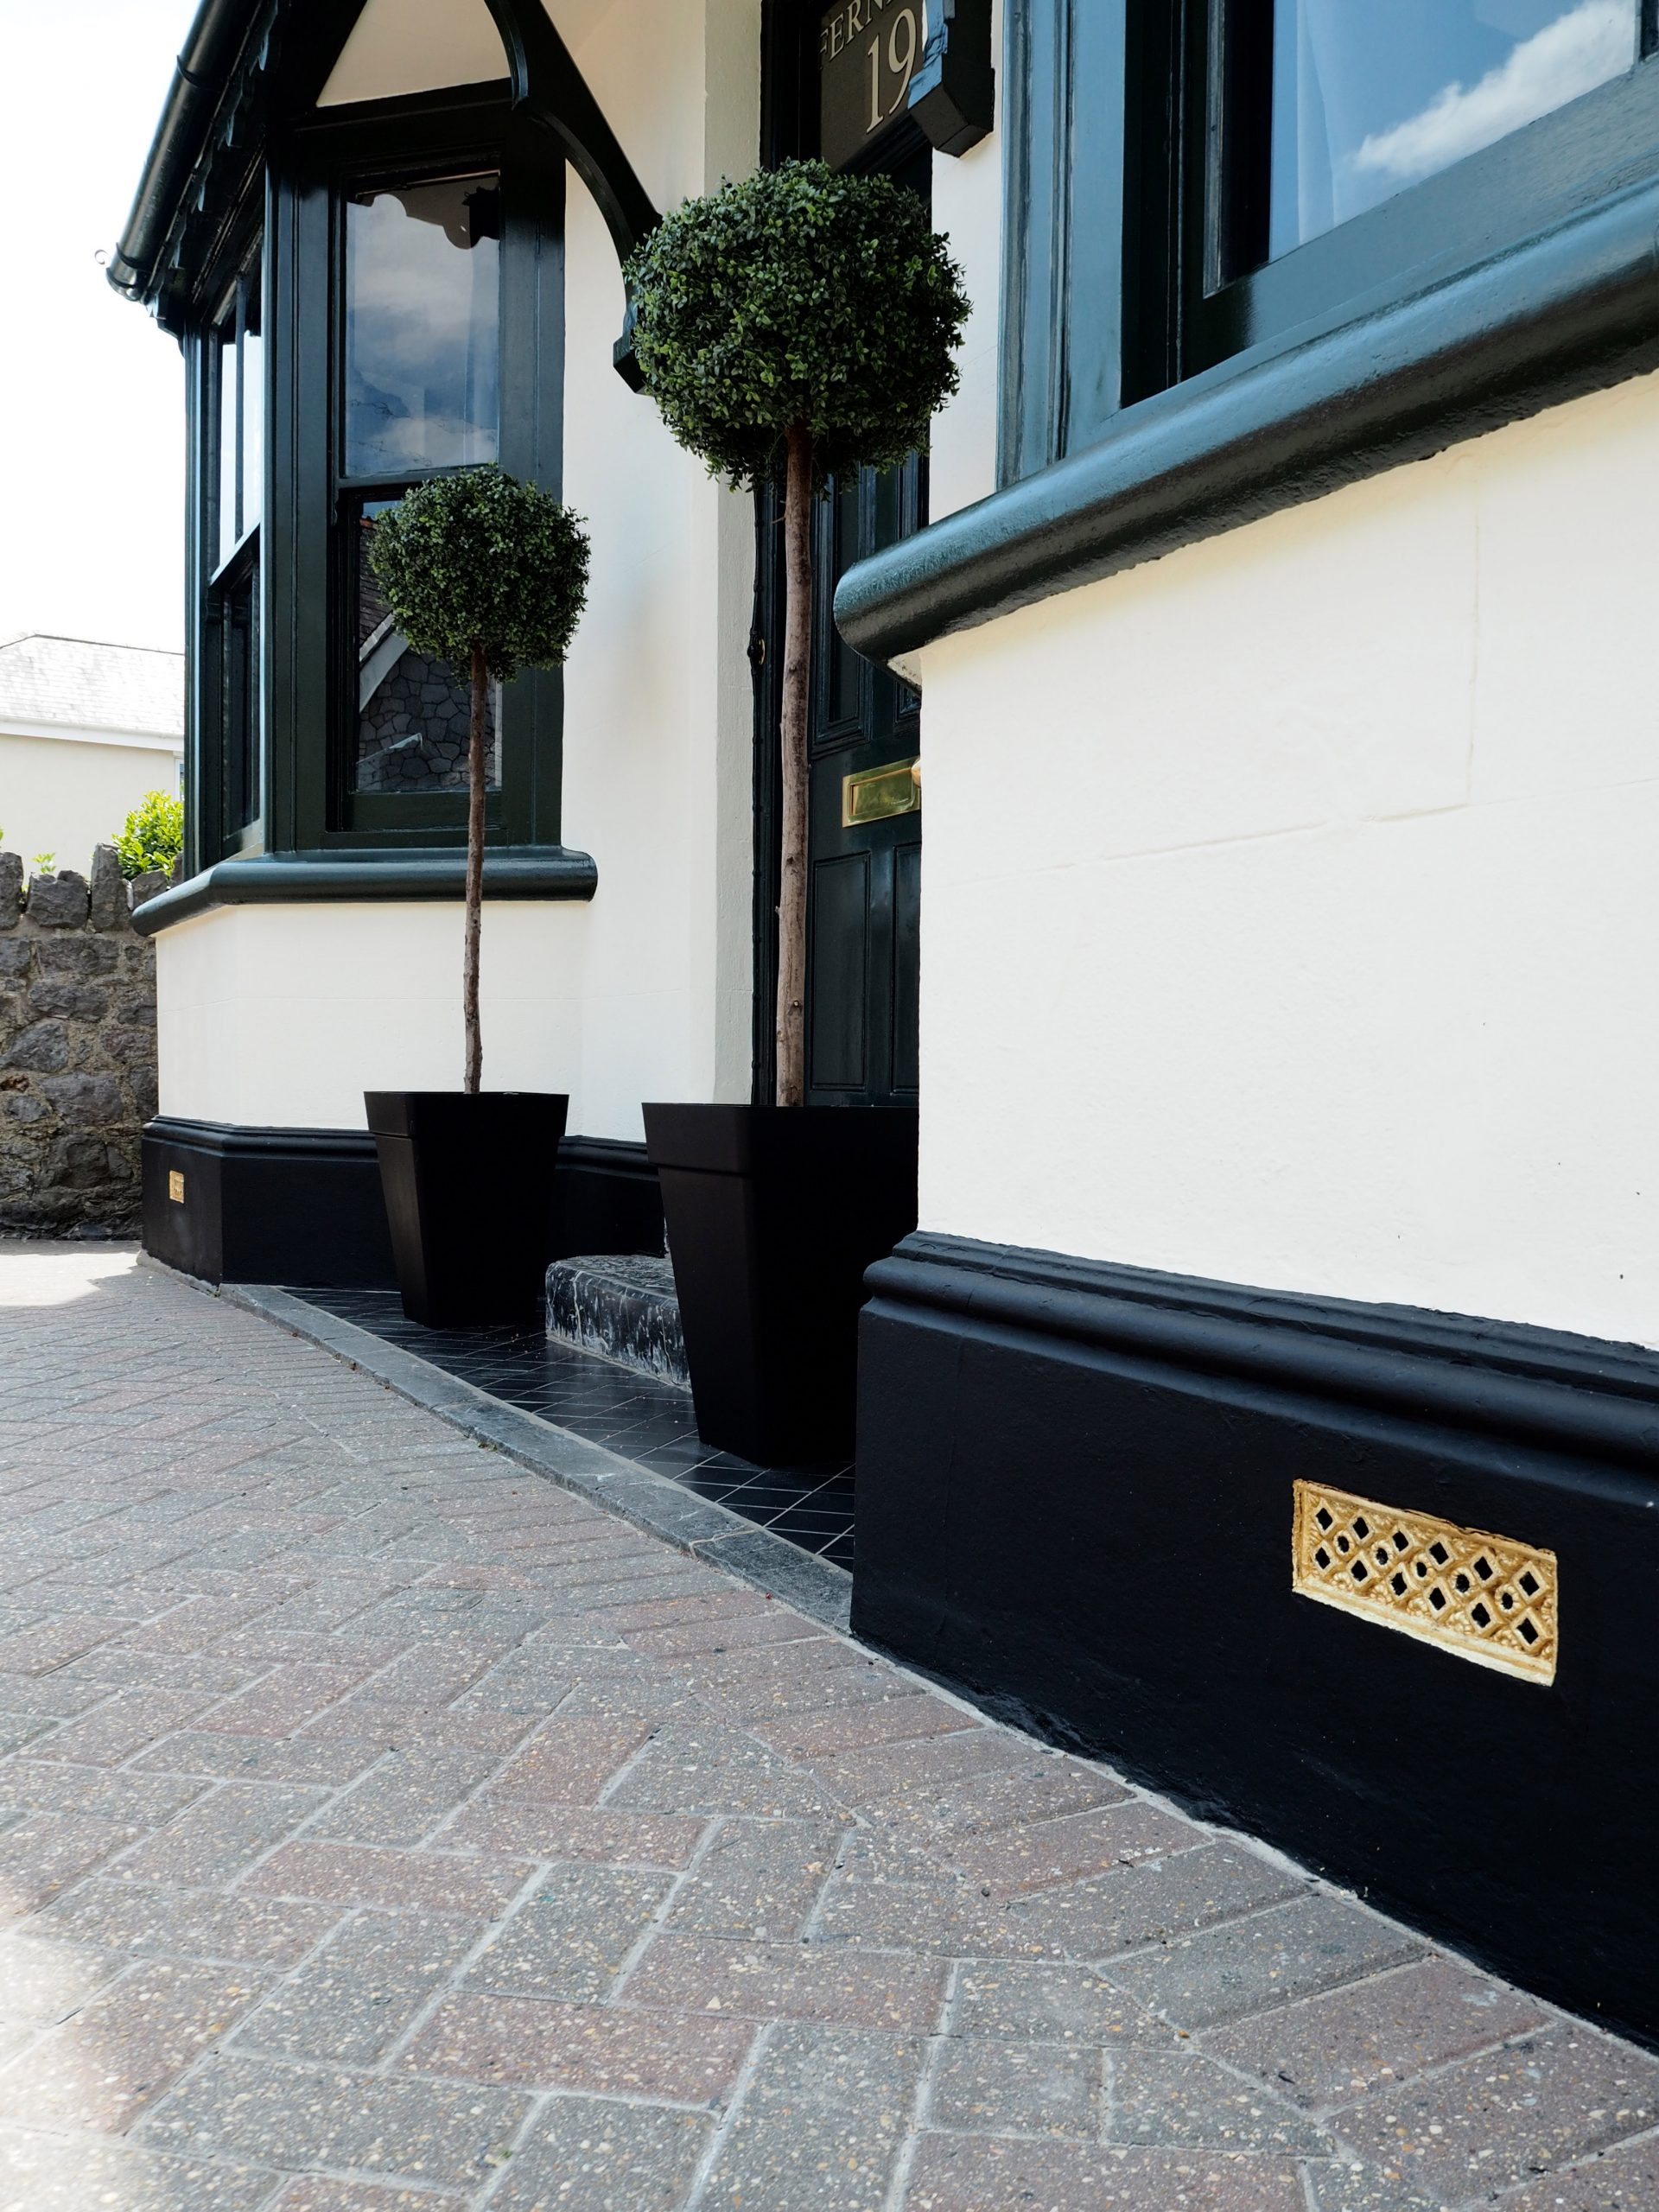 Kerb Appeal - 10 Ways to Improve the Appearance of Your HomeKerb Appeal - 10 Ways to Improve the Appearance of Your Home